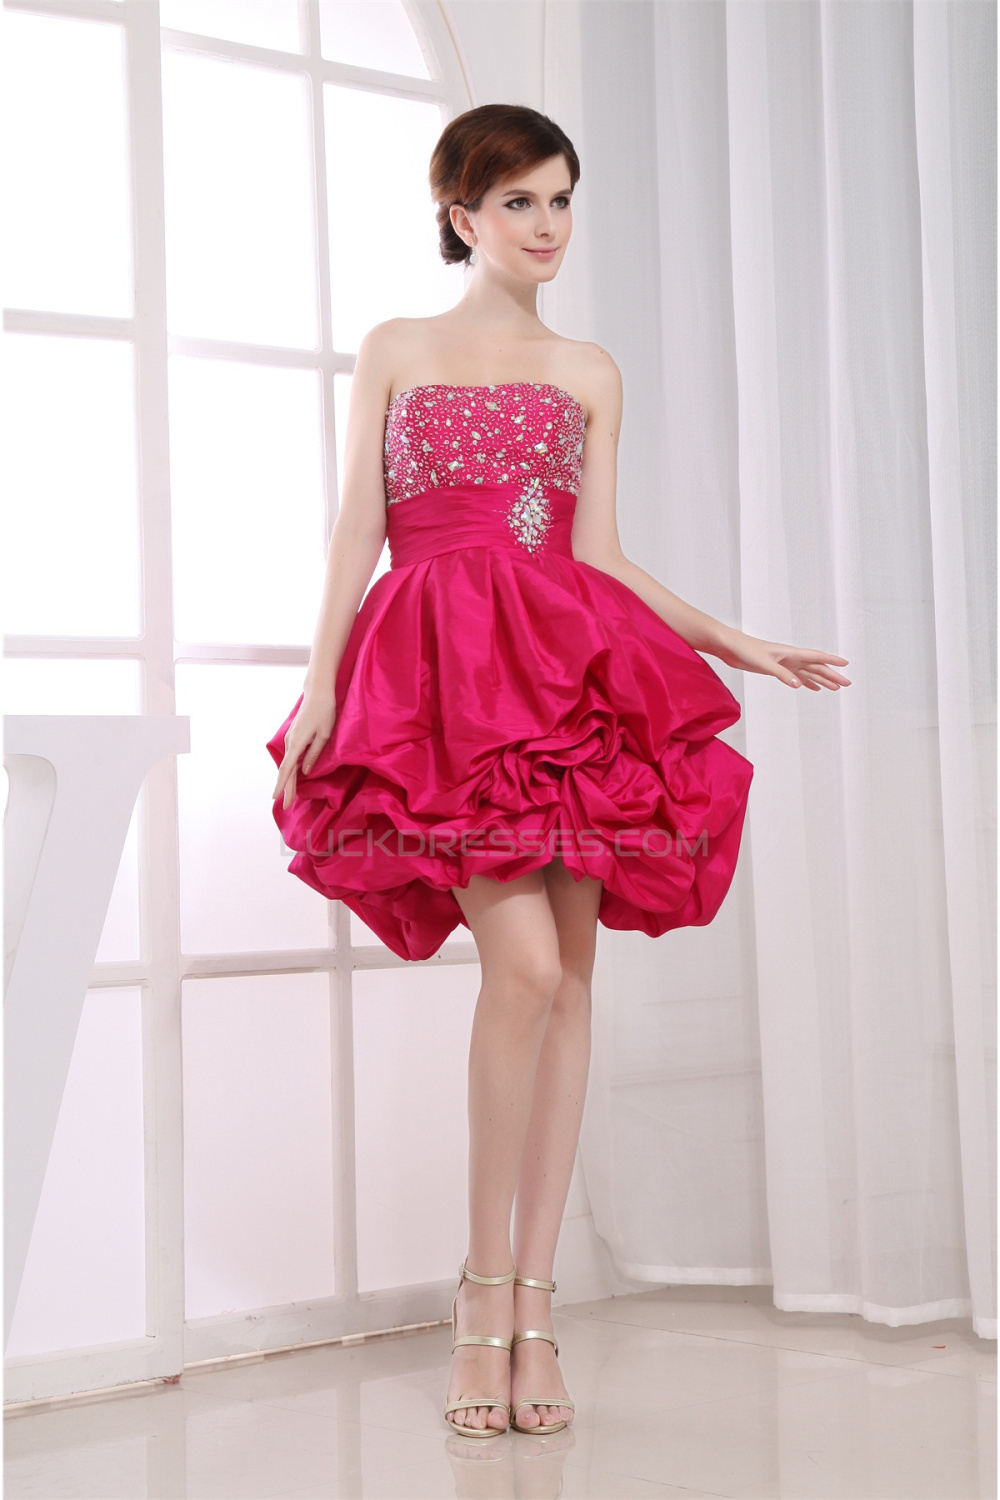 983b56b3eb Formal Evening Dresses Short